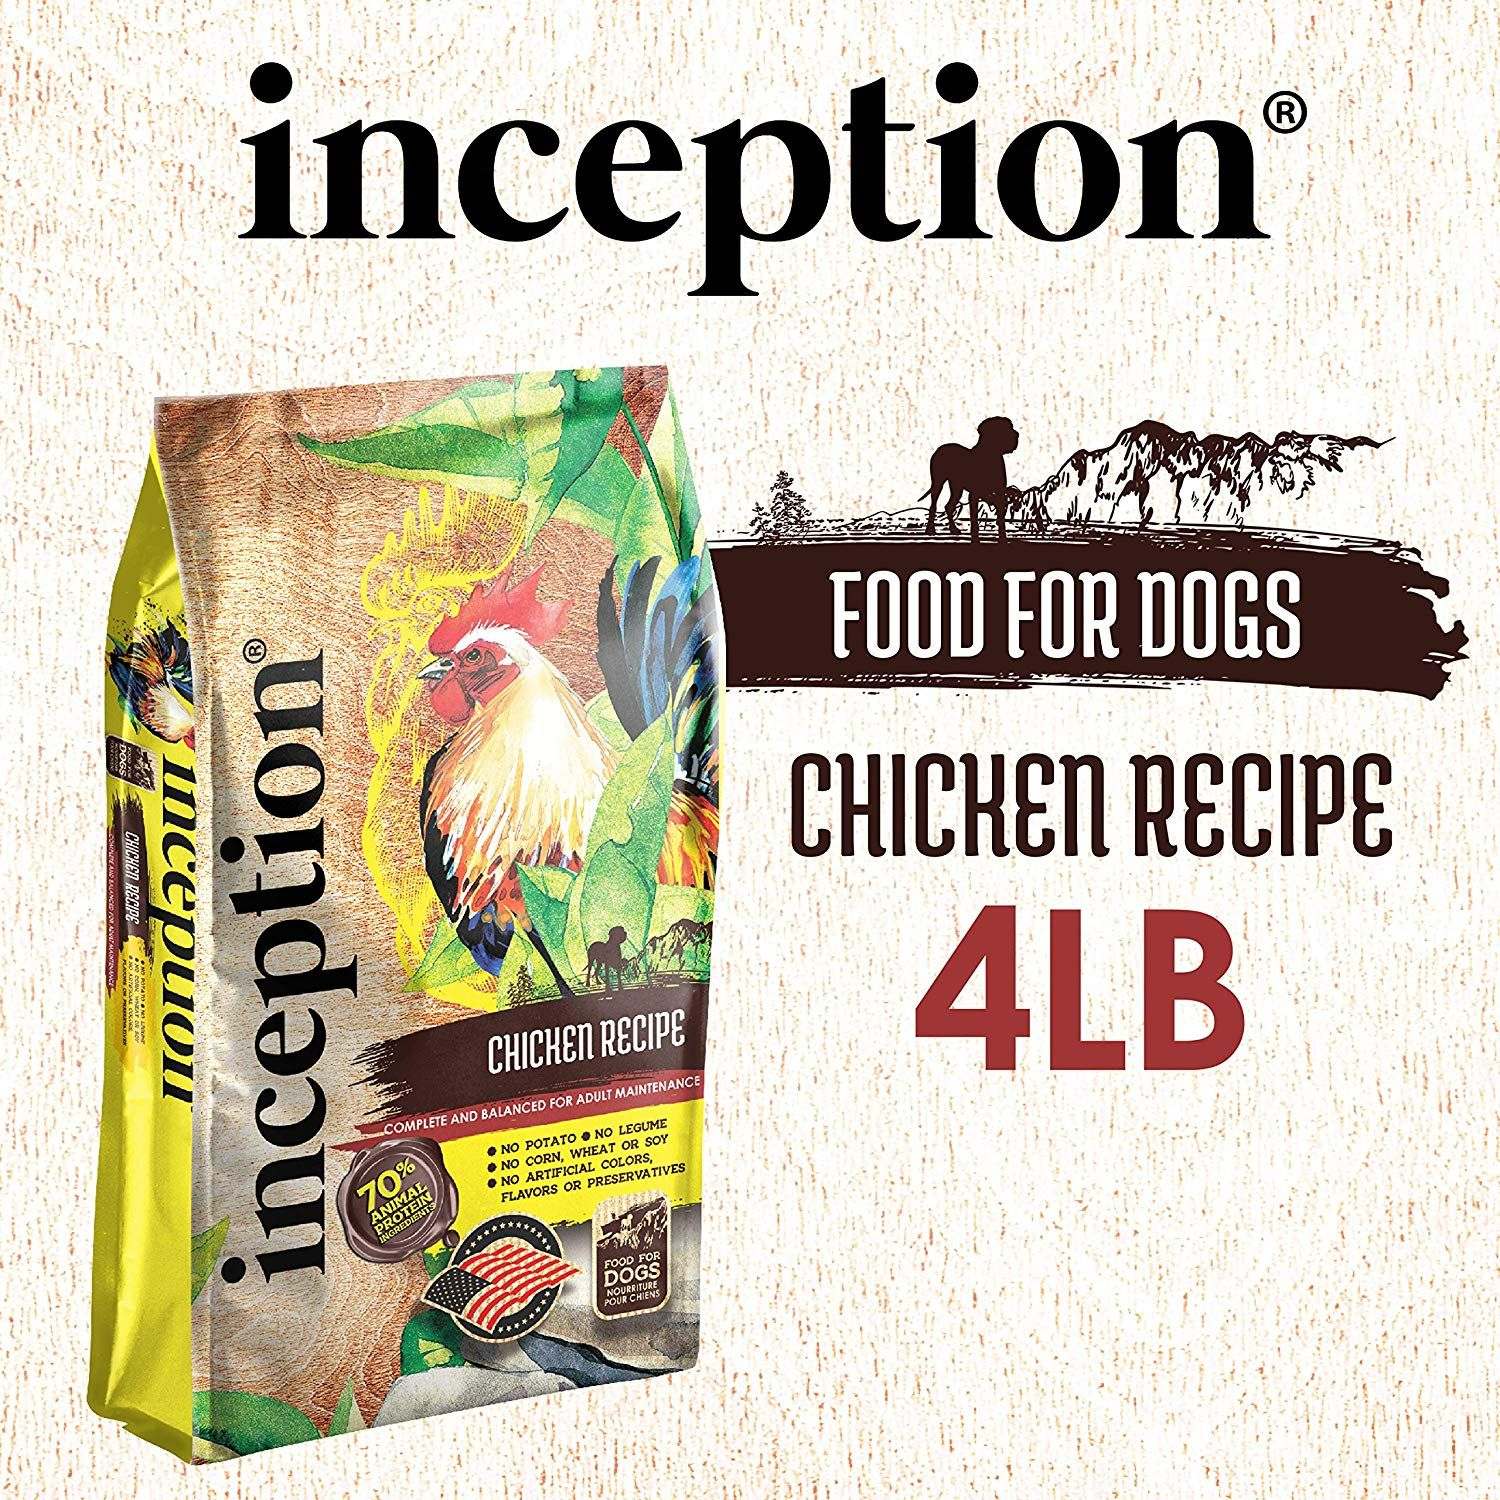 Inception dog food chicken 4lb in 2020 dog food recipes